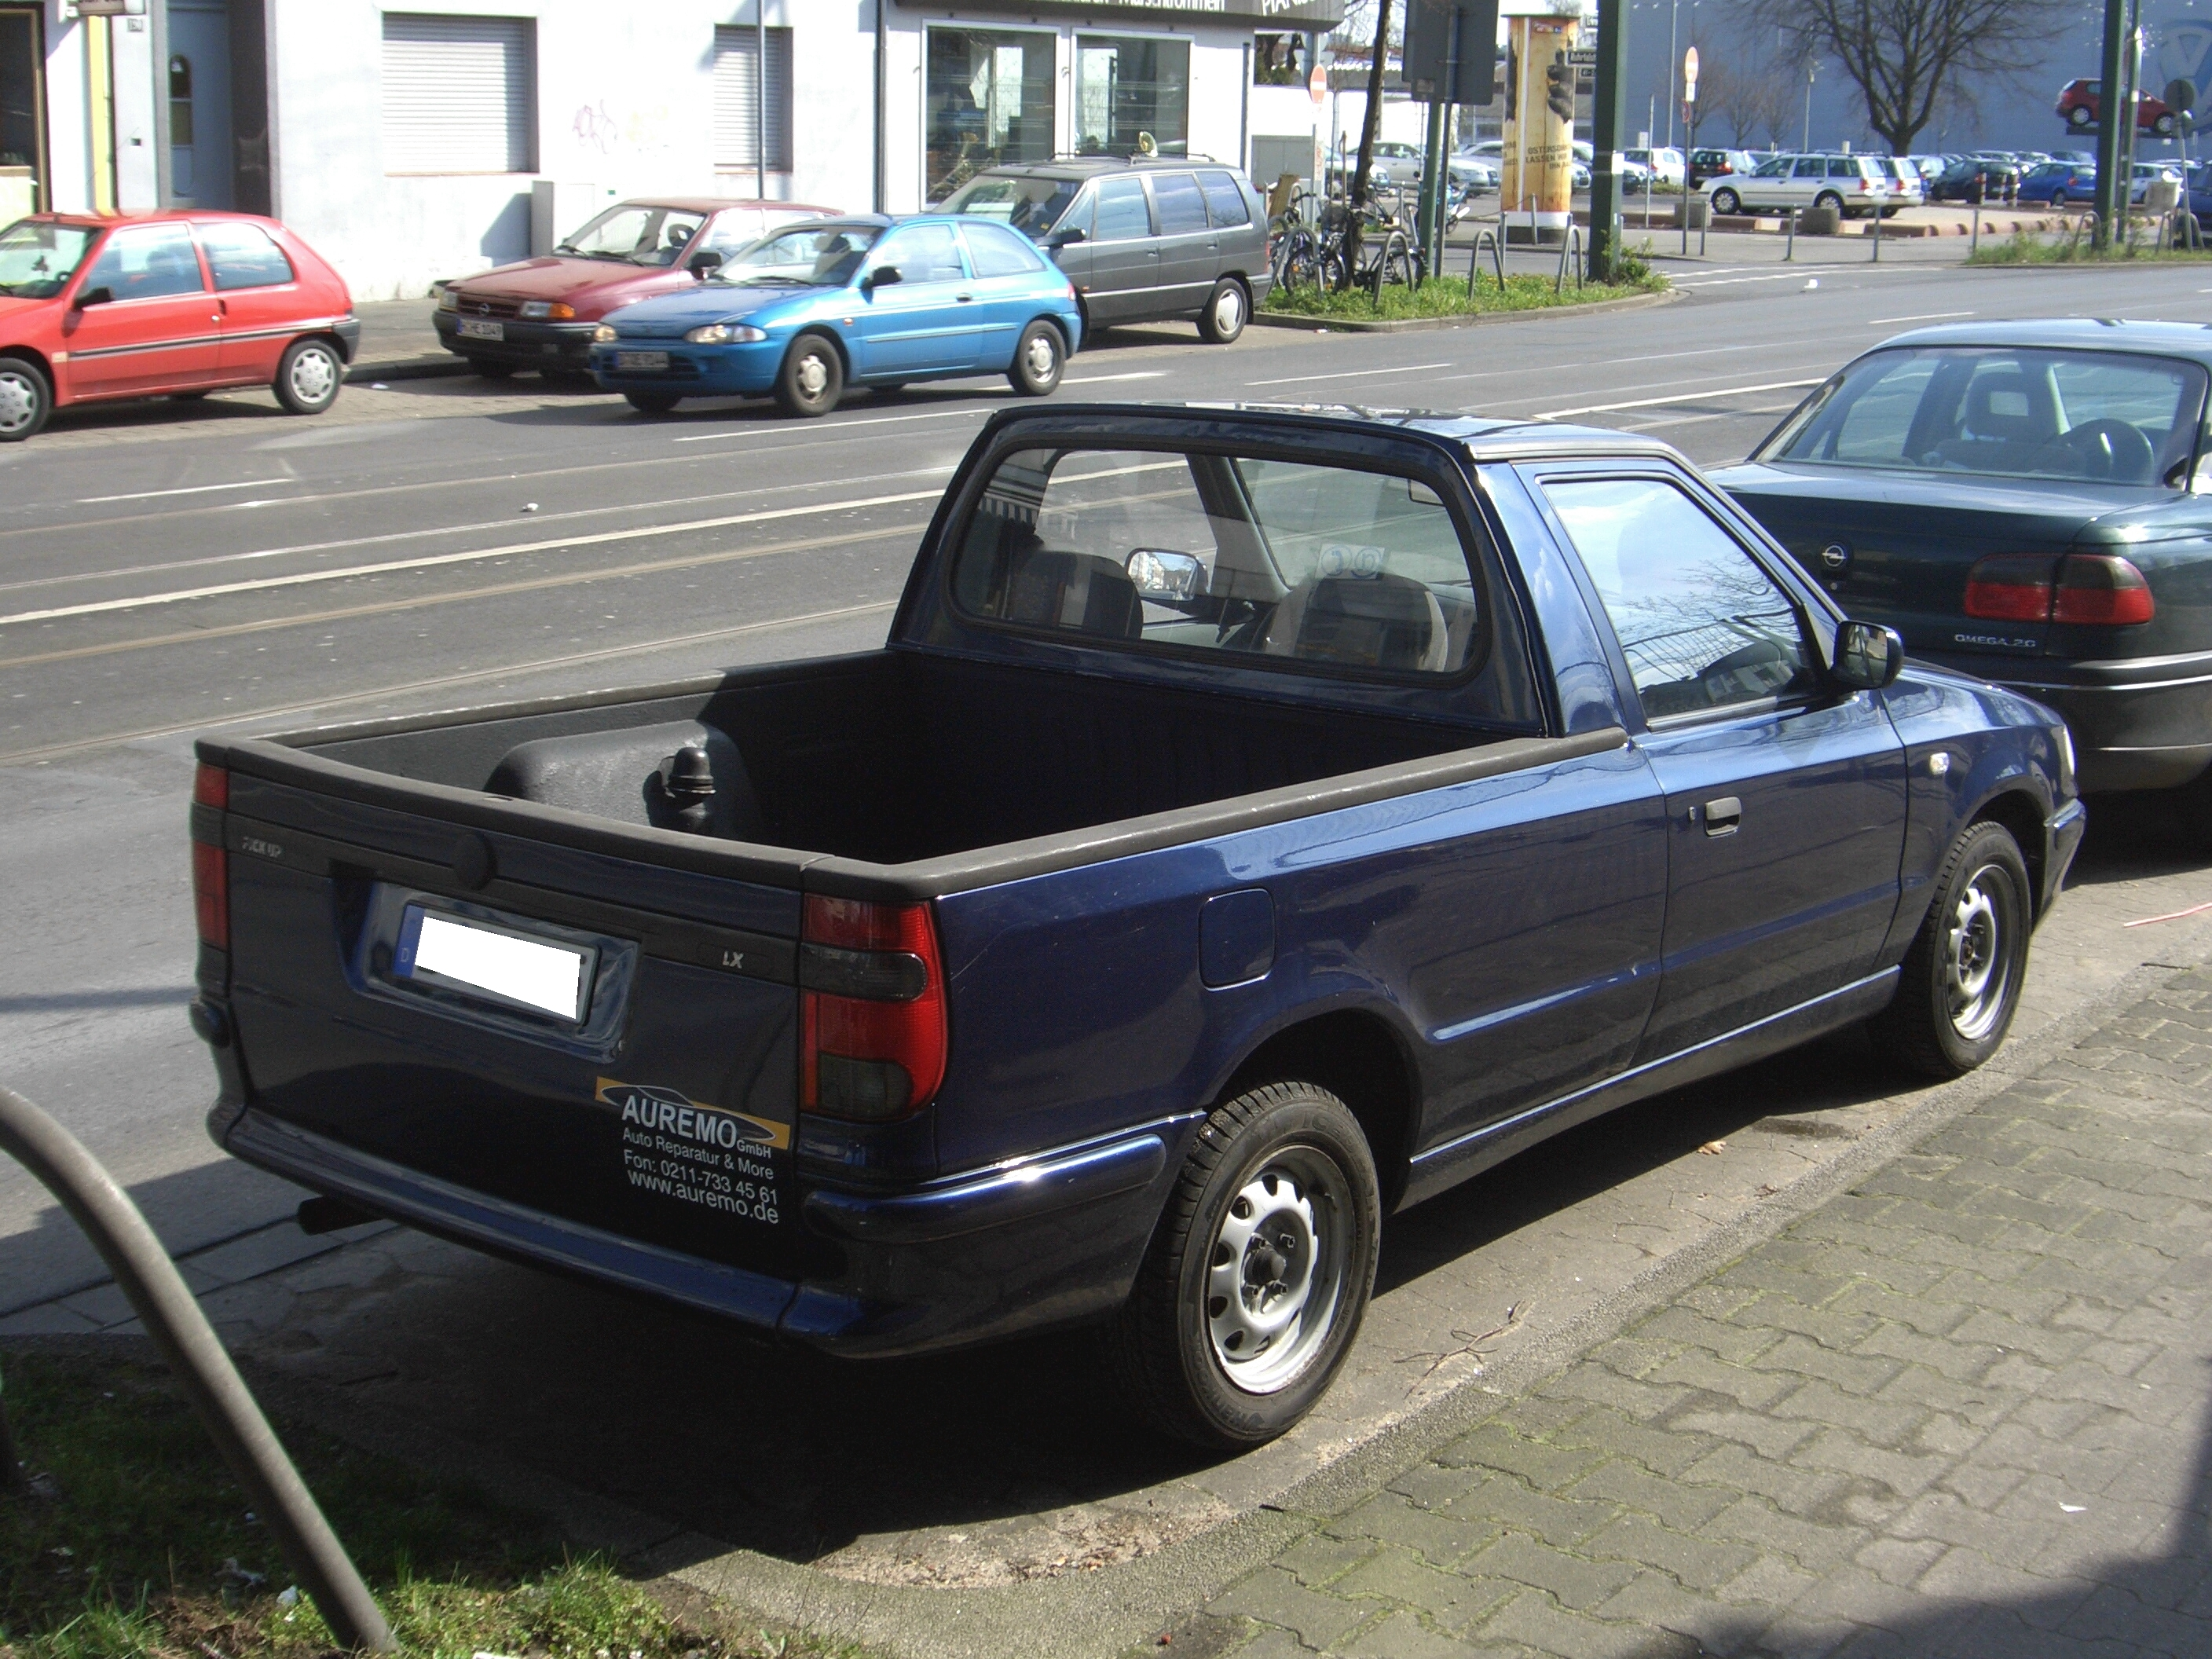 archivo vw caddy 9u pick up 1996 2000 backright 2008 03 23 wikipedia la enciclopedia libre. Black Bedroom Furniture Sets. Home Design Ideas